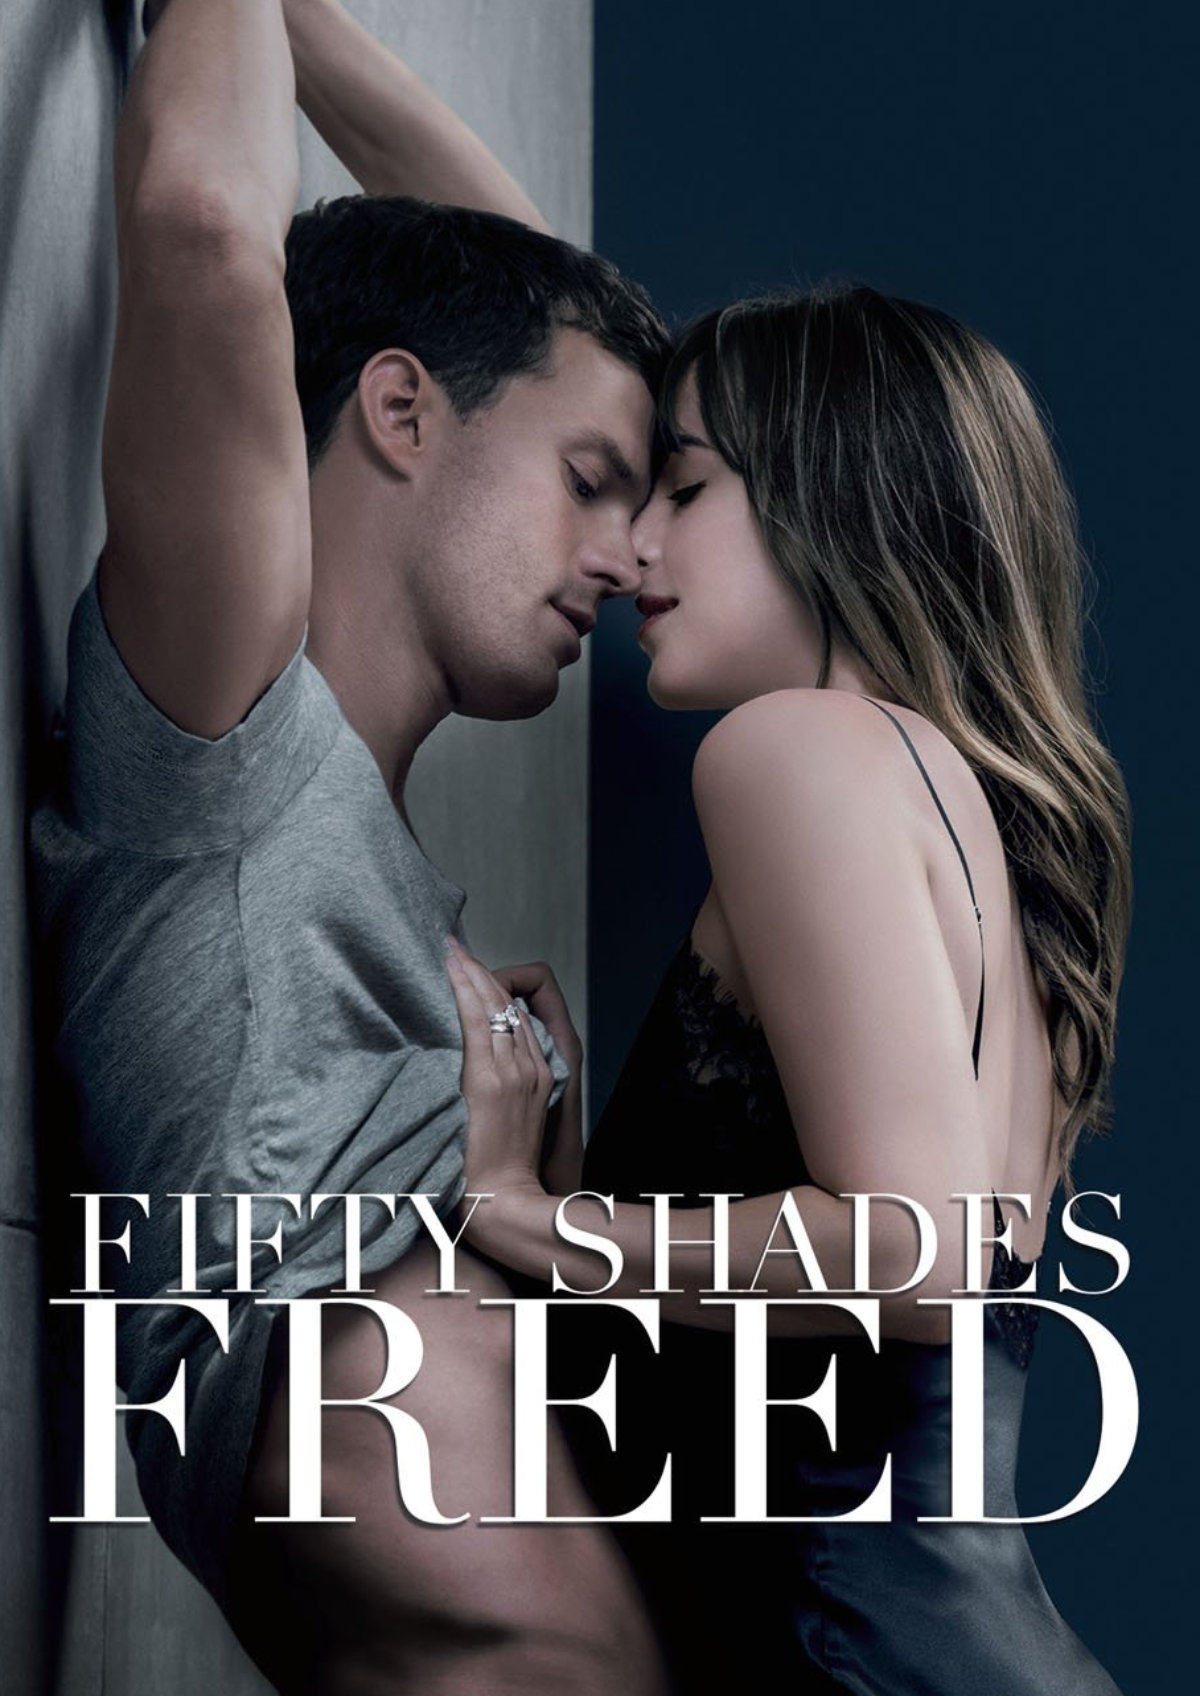 'Fifty Shades Freed' movie poster